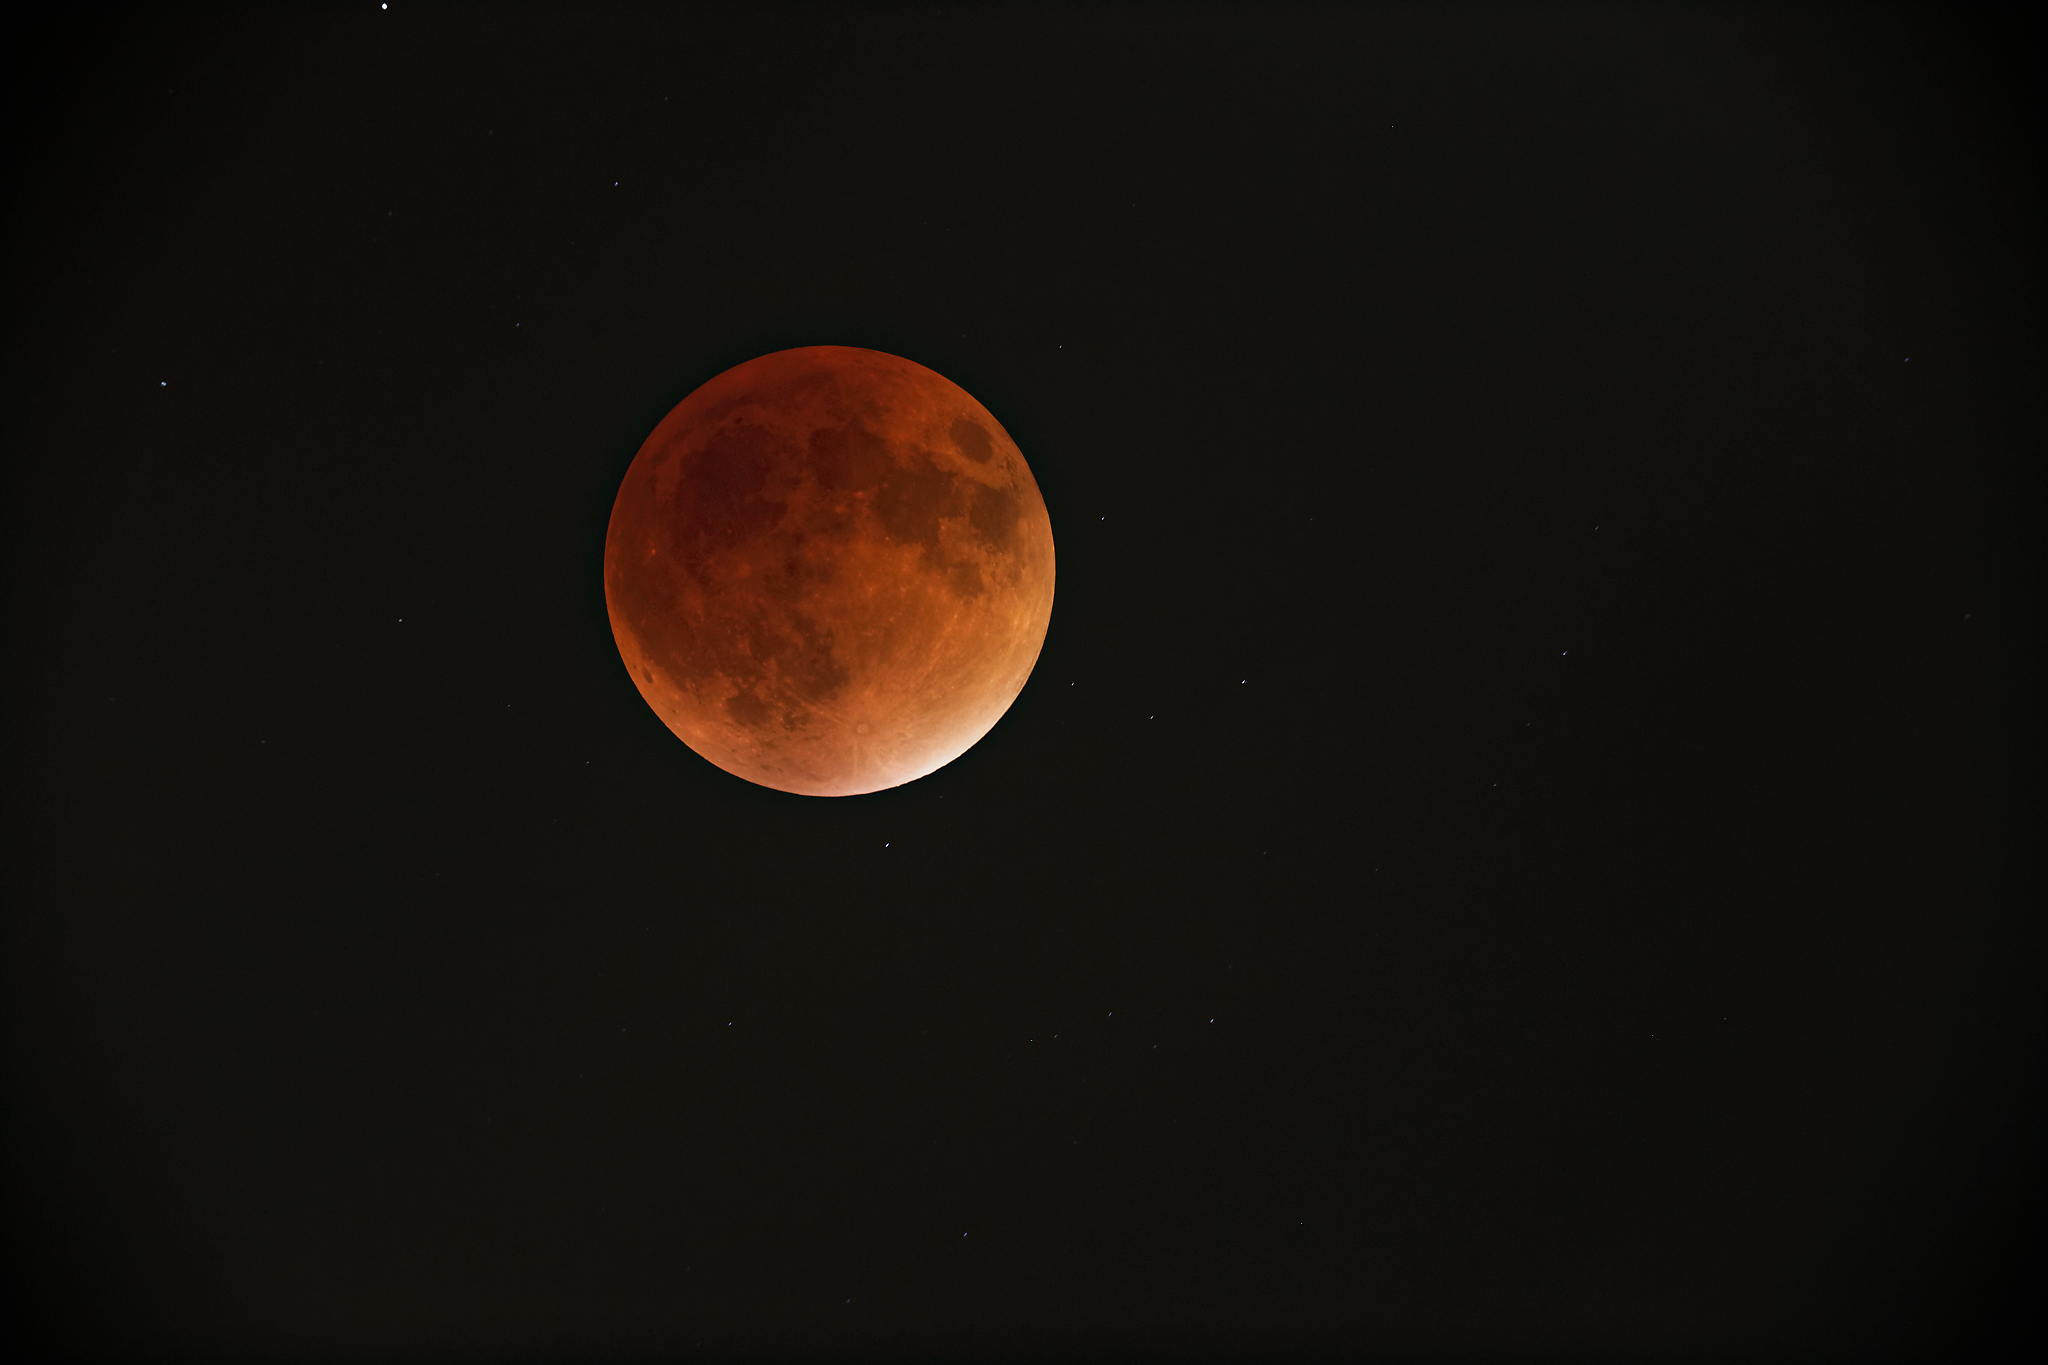 blood moon january 2019 new jersey - photo #4